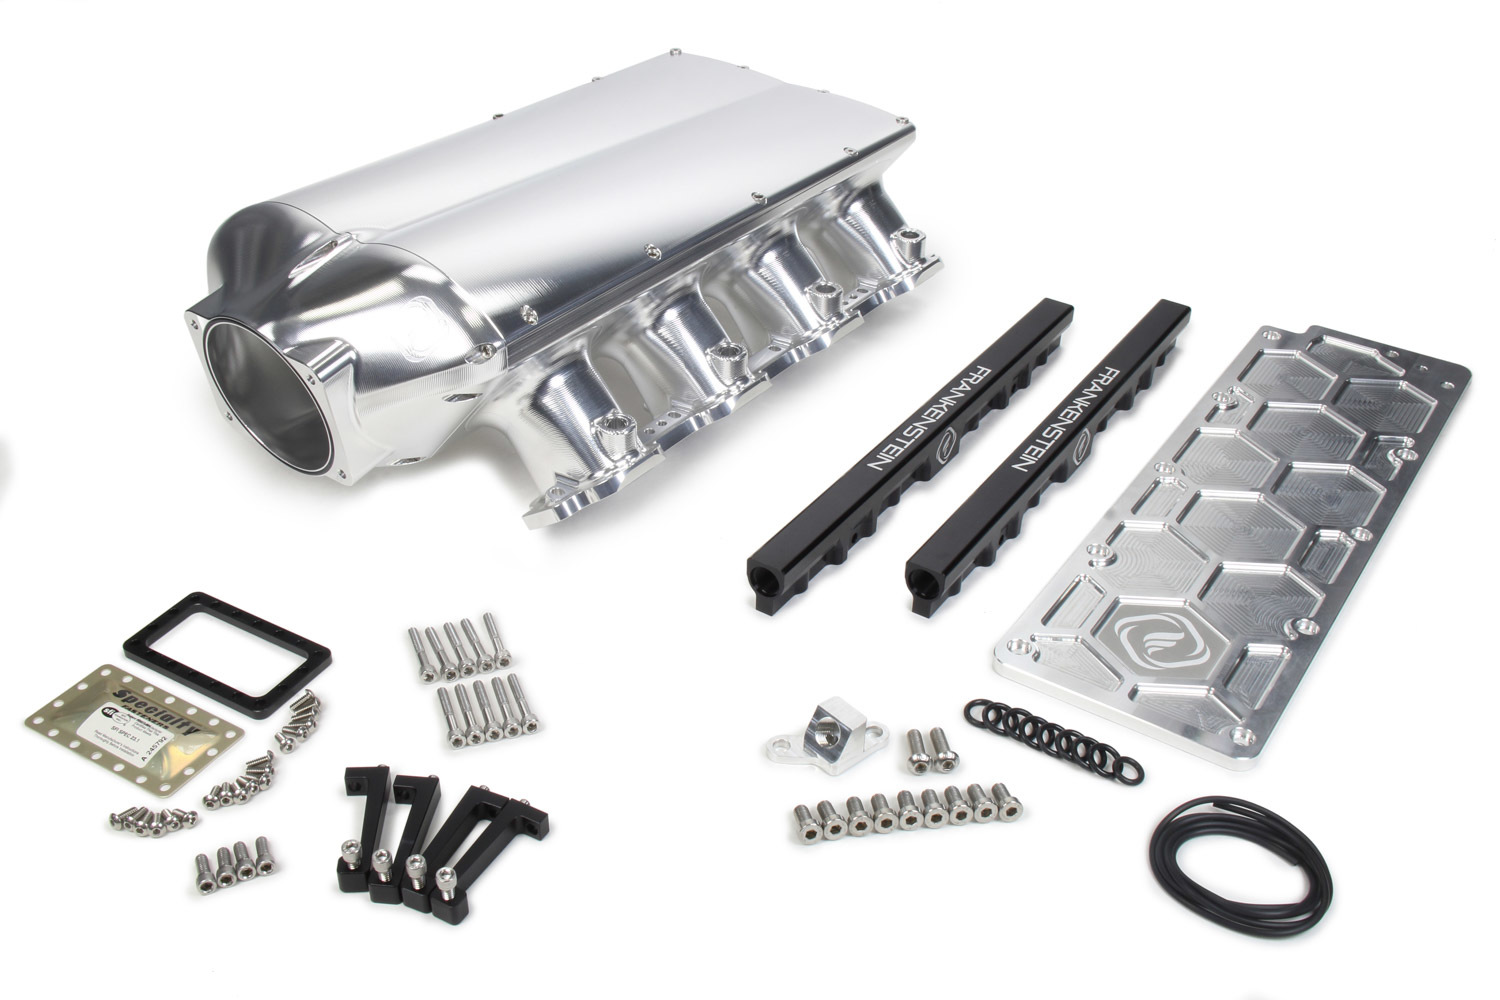 Frankenstein Engine Dynamics 217001 Intake Manifold, LowPro, Fuel Rails Included, Aluminum, Machined, LS7, GM LS-Series, Kit